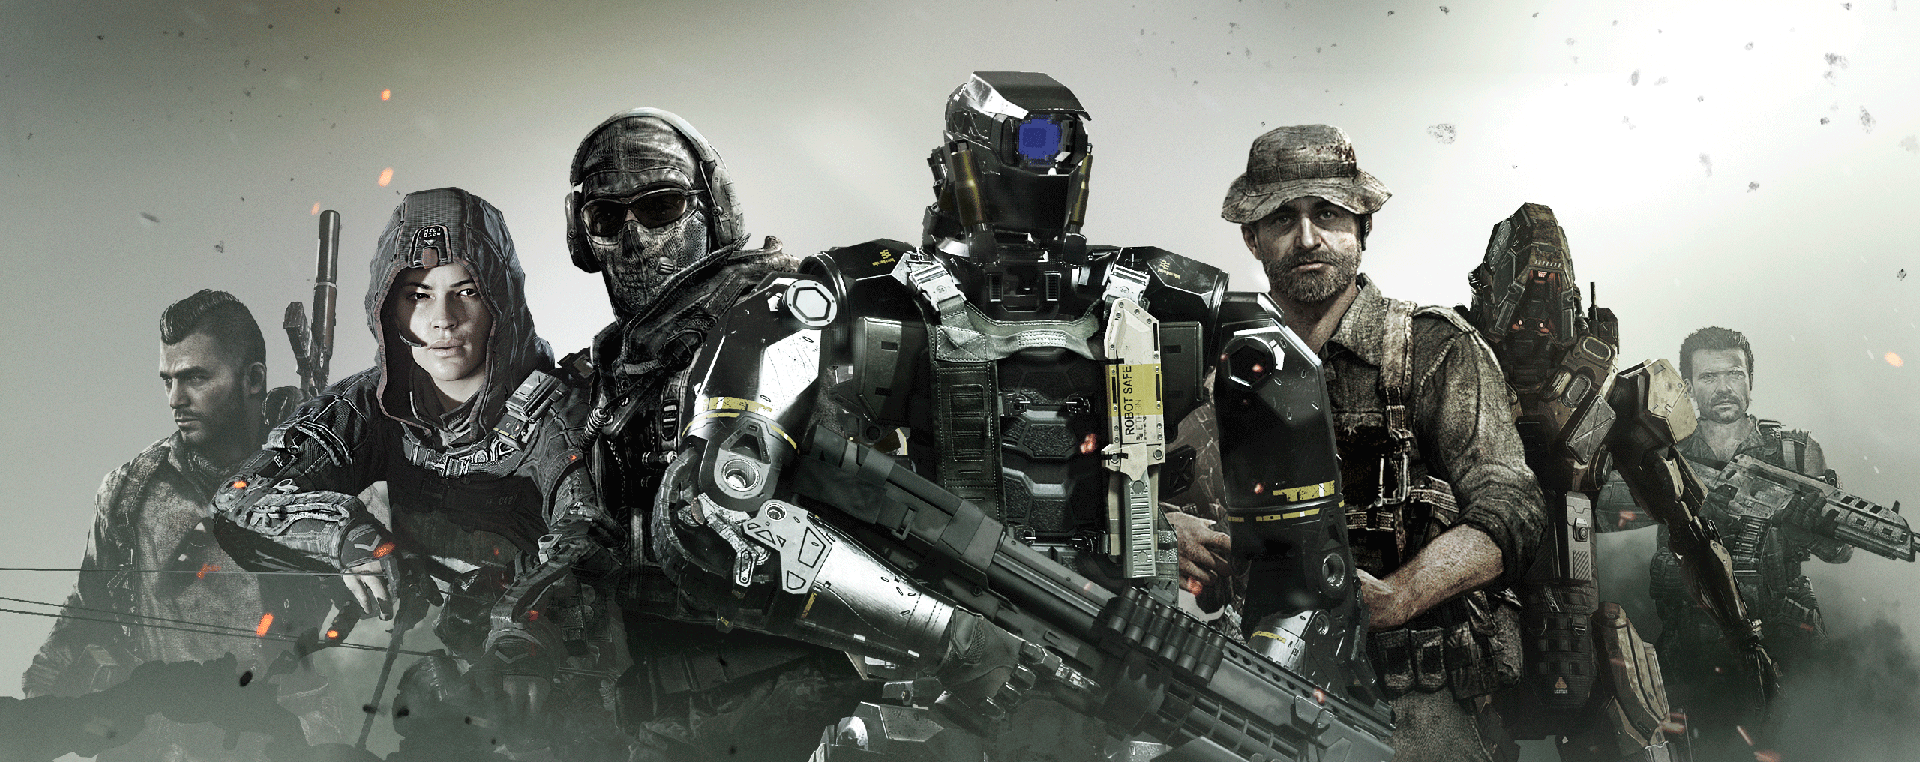 Call Of Duty wallpapers, Video Game, HQ